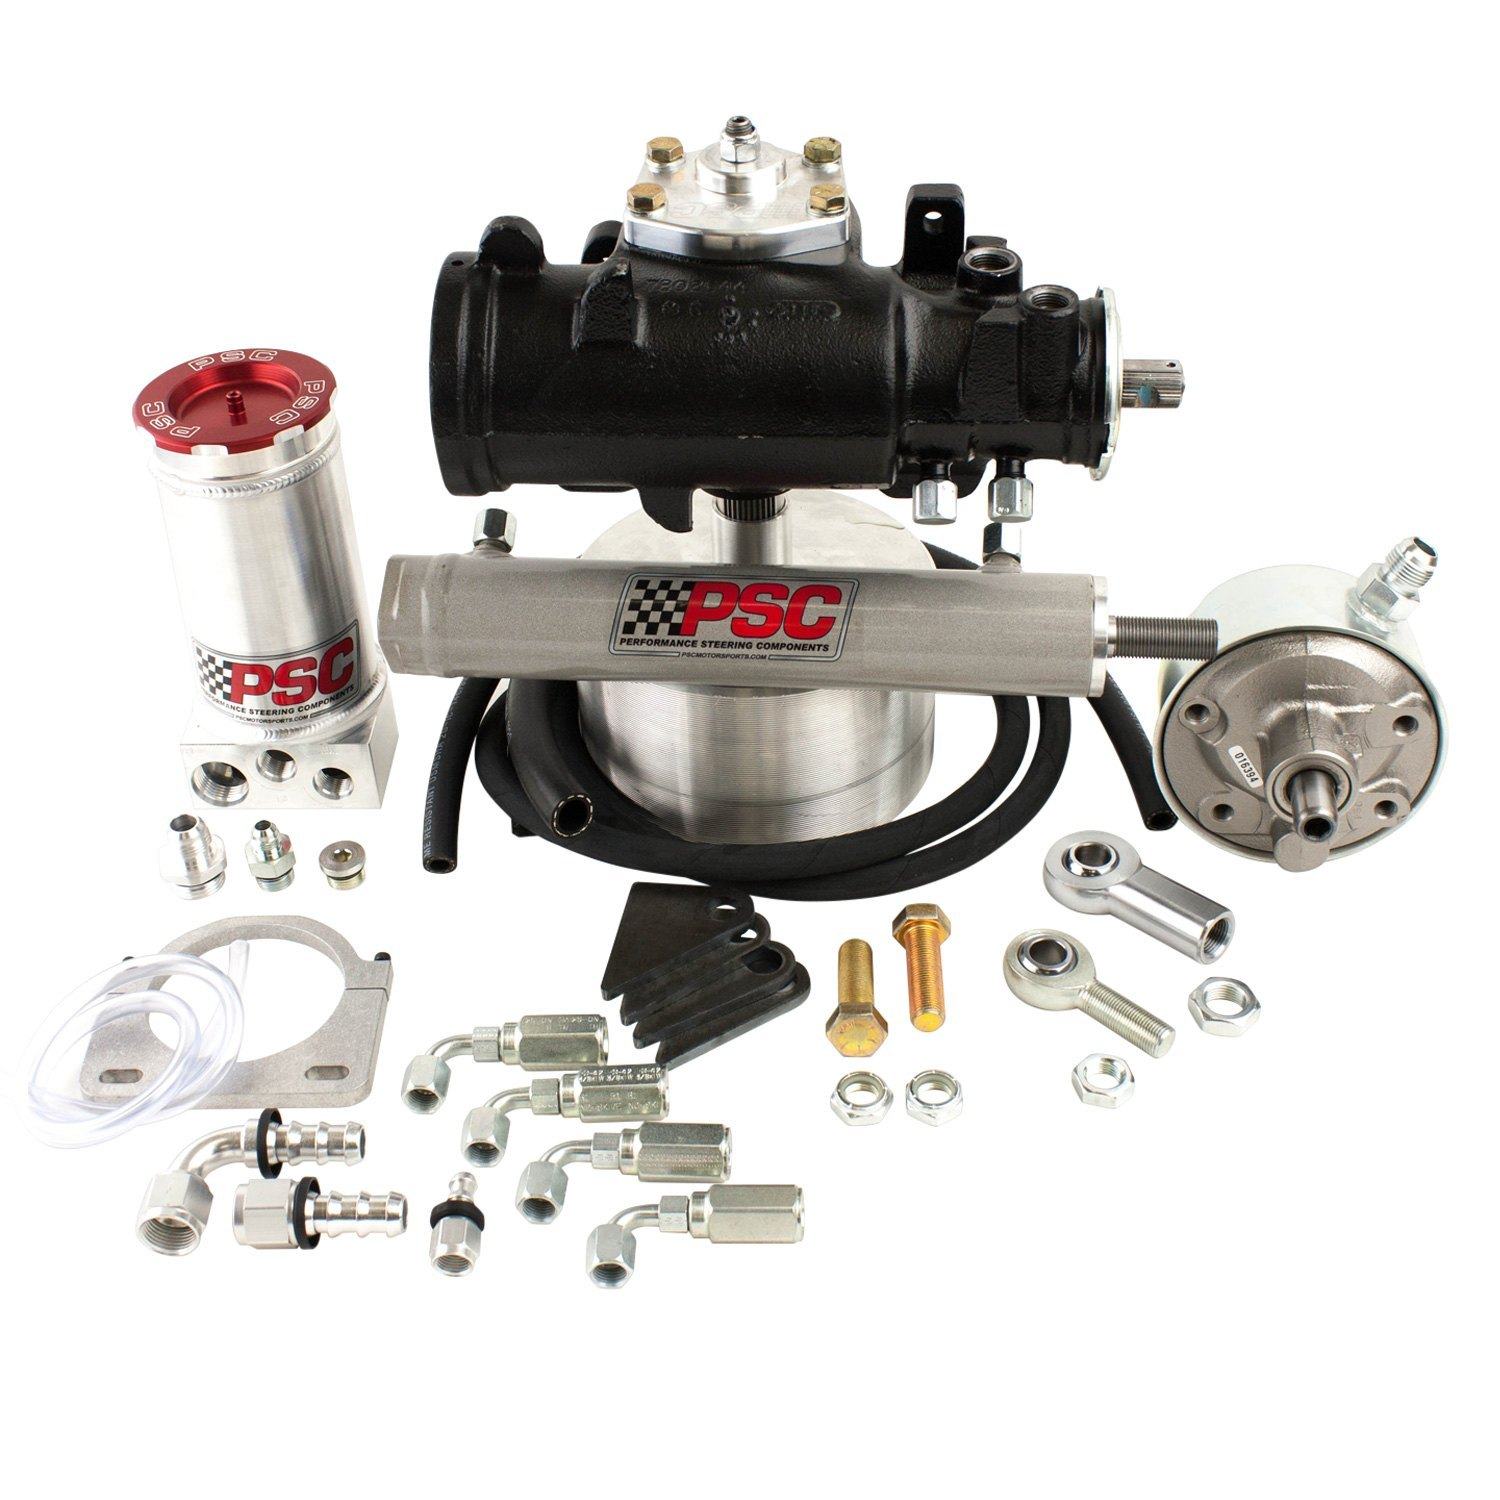 Hydraulic Assist Cylinders : Psc motorsports extreme hydraulic cylinder assist kit